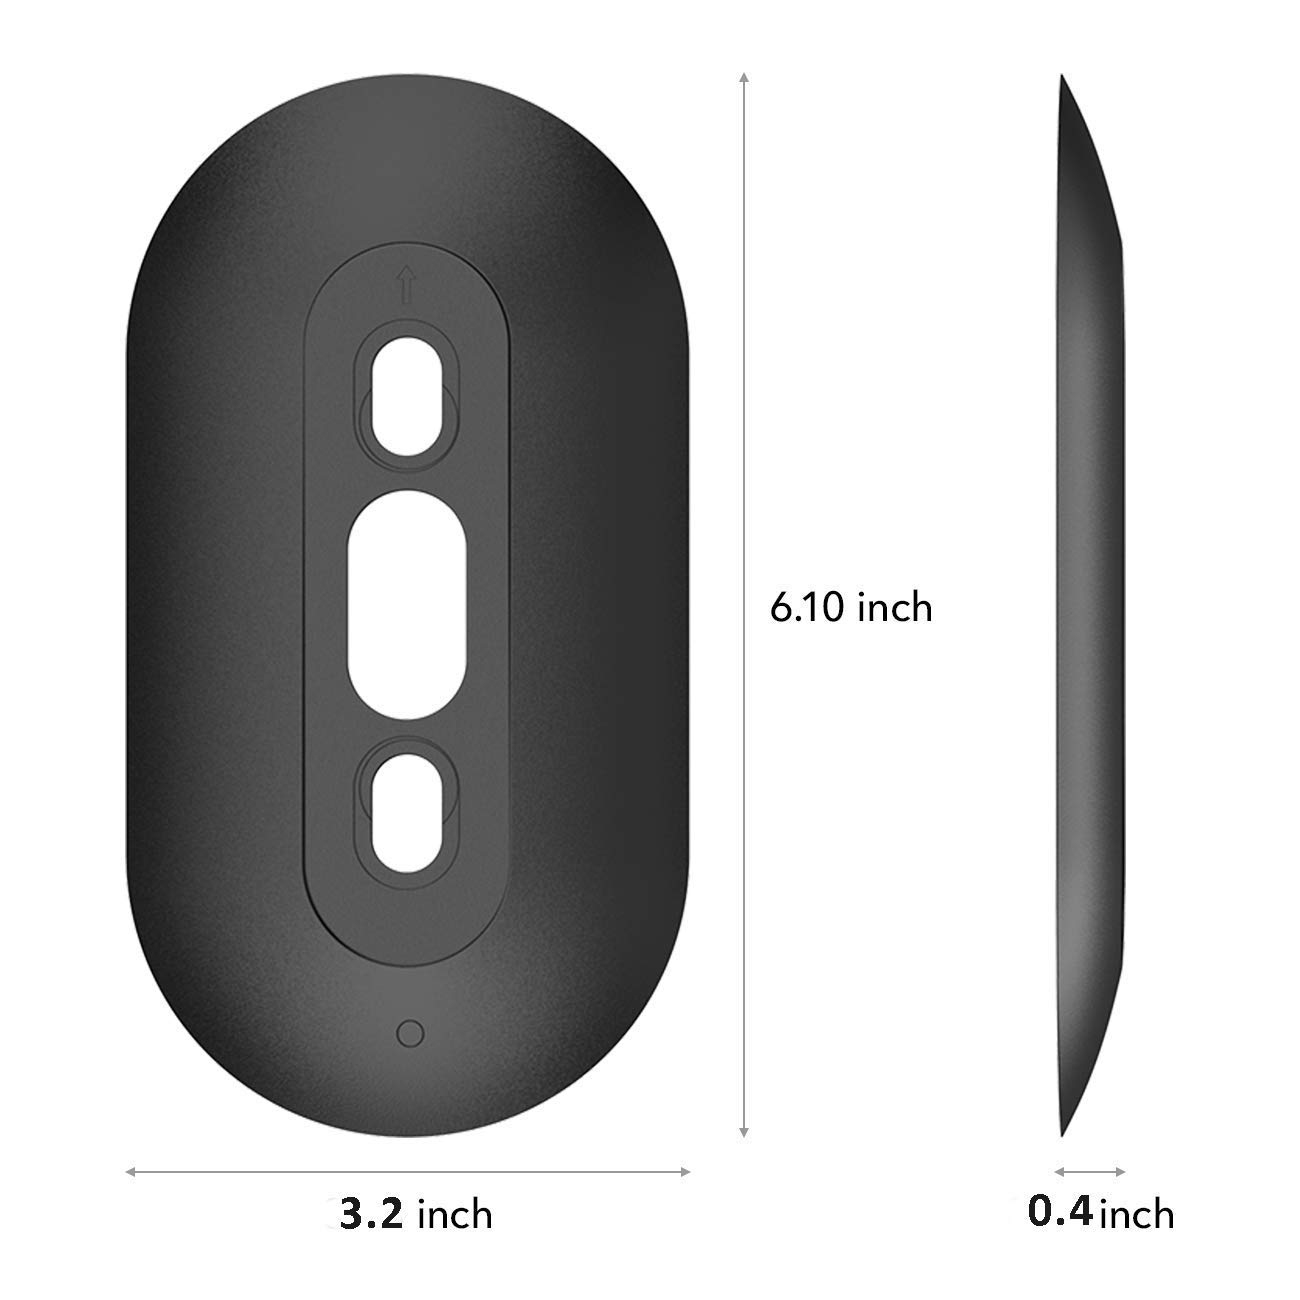 Plastic Wall Mount Bracket Cover Wedge Kit works with Original 15/°Adjustable Wedge Black Gelink Wall Plate with L25/°//R25/°Wedge for Nest Hello Doorbell